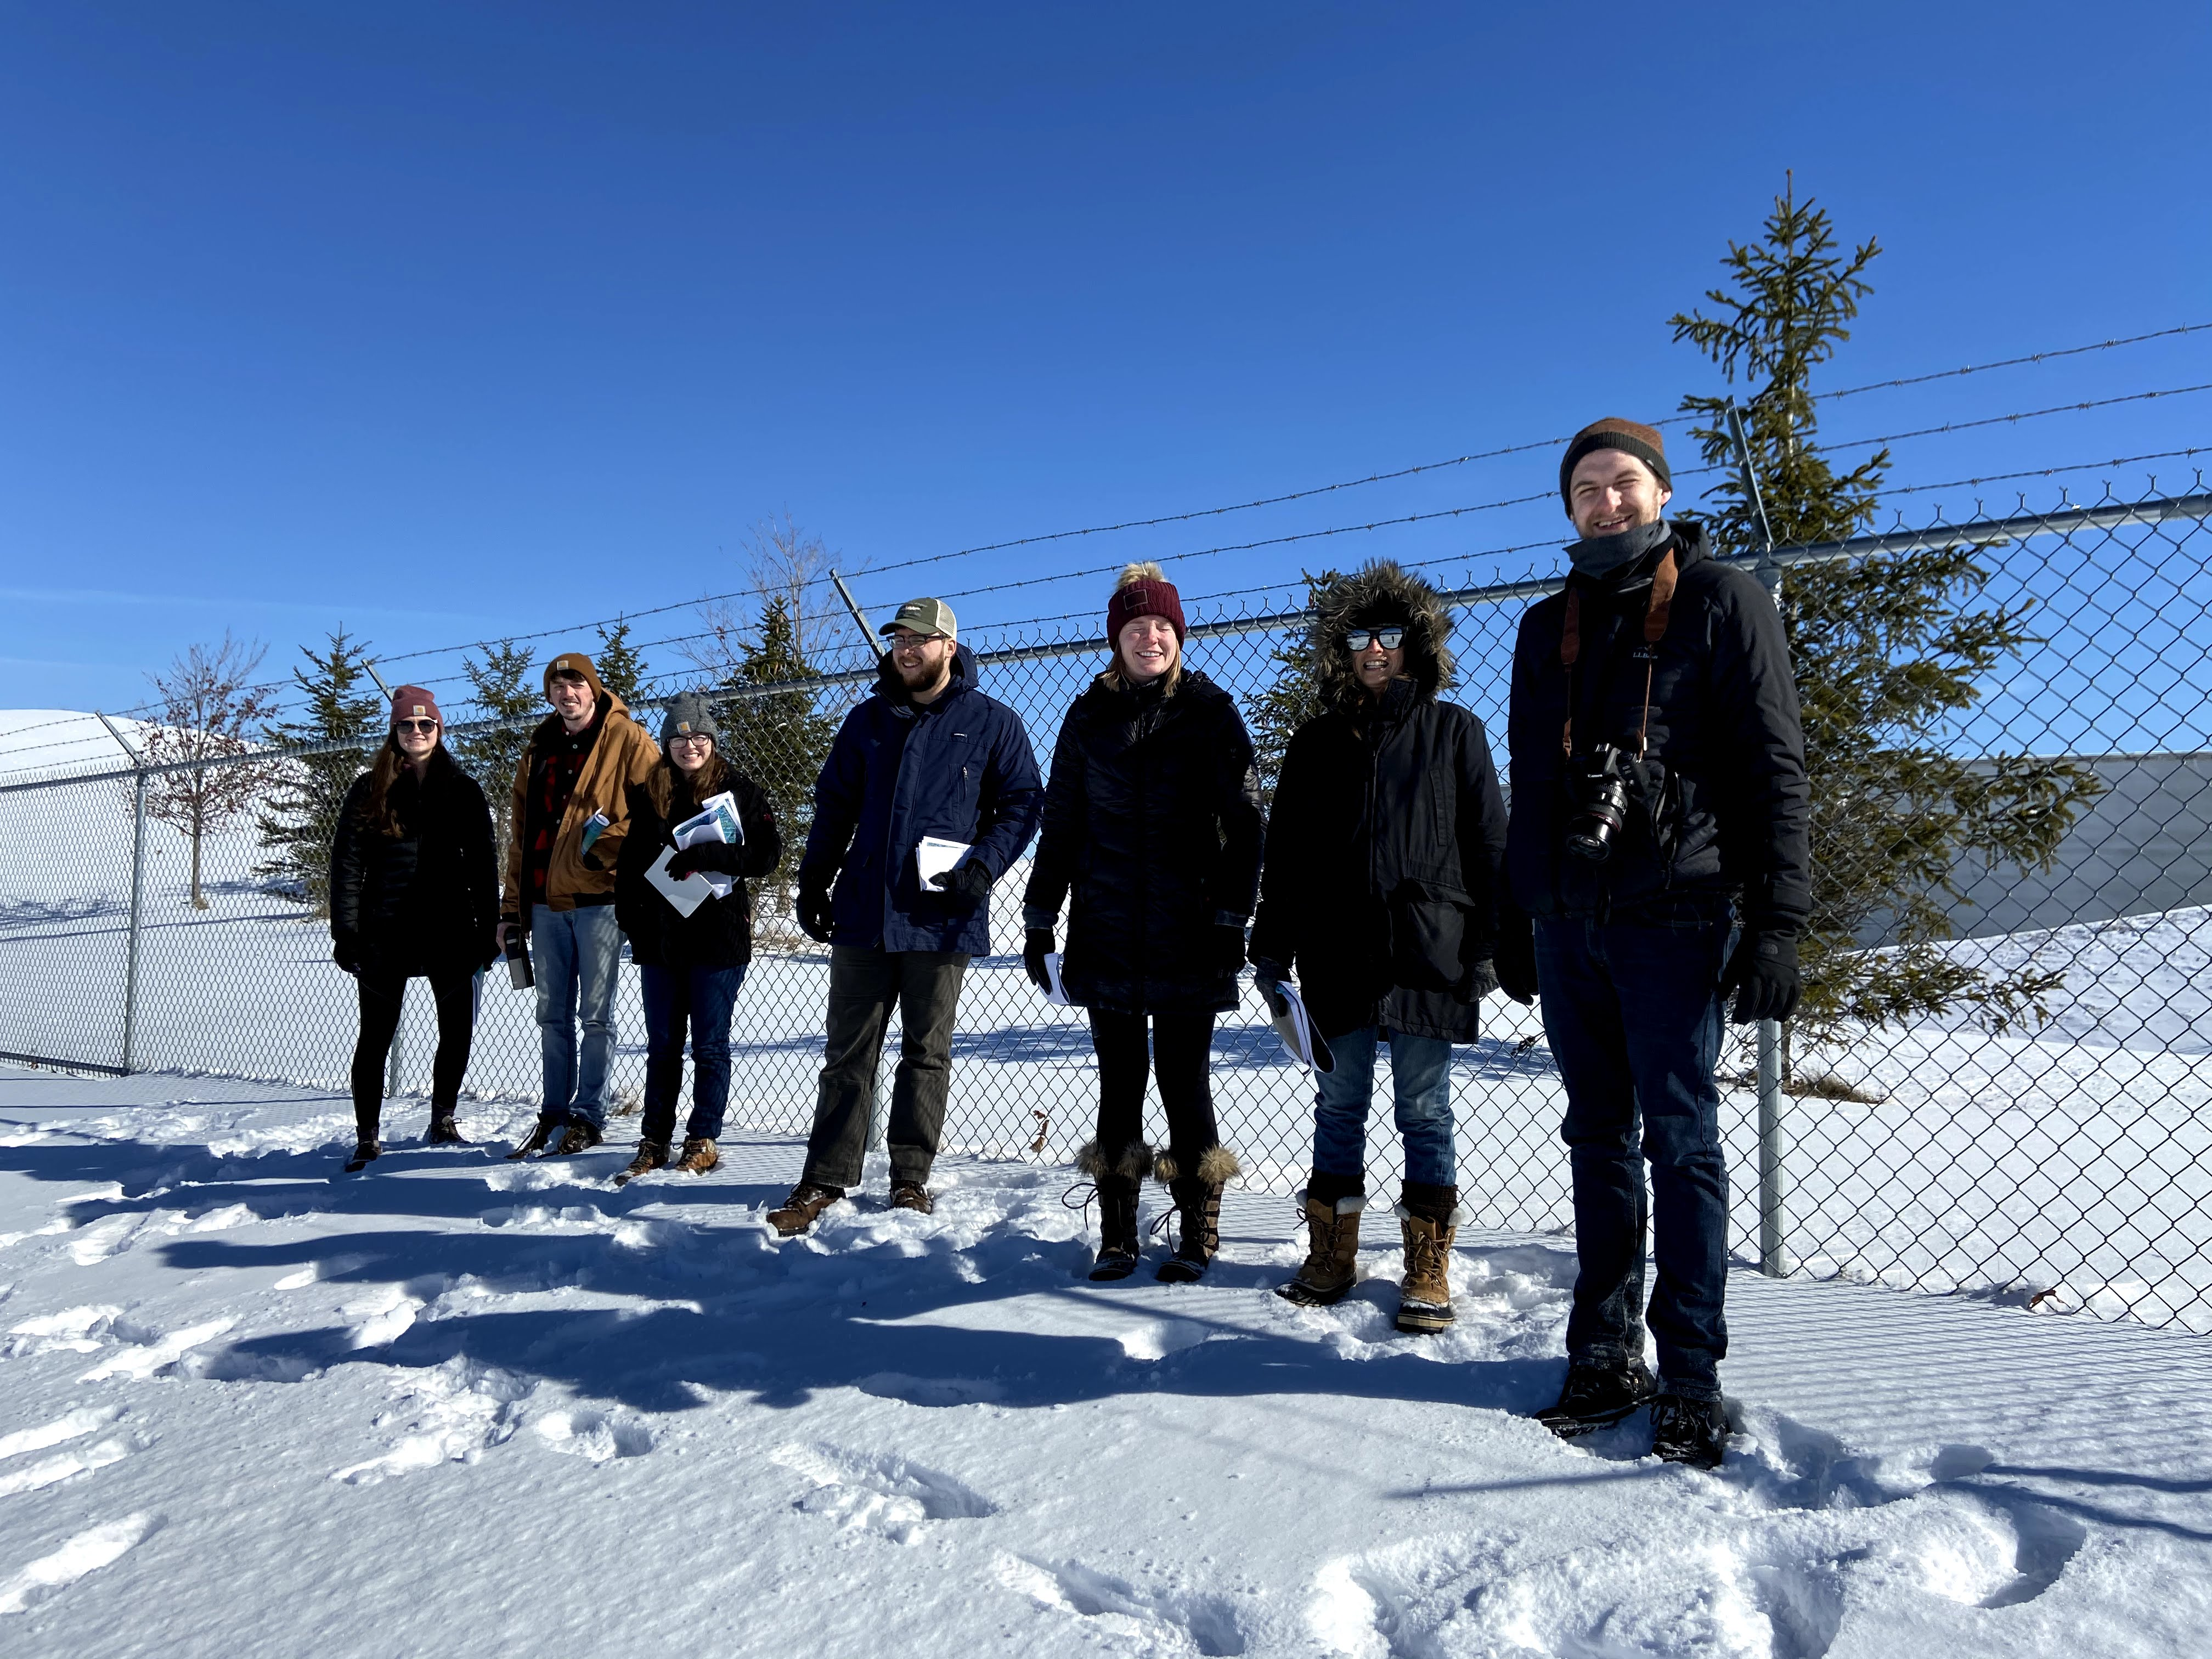 The student team visited the Westcott Reservoir in February 2020 (before masking and social distancing mandates were enacted) to walk the site and observe existing conditions, including winter use activities.